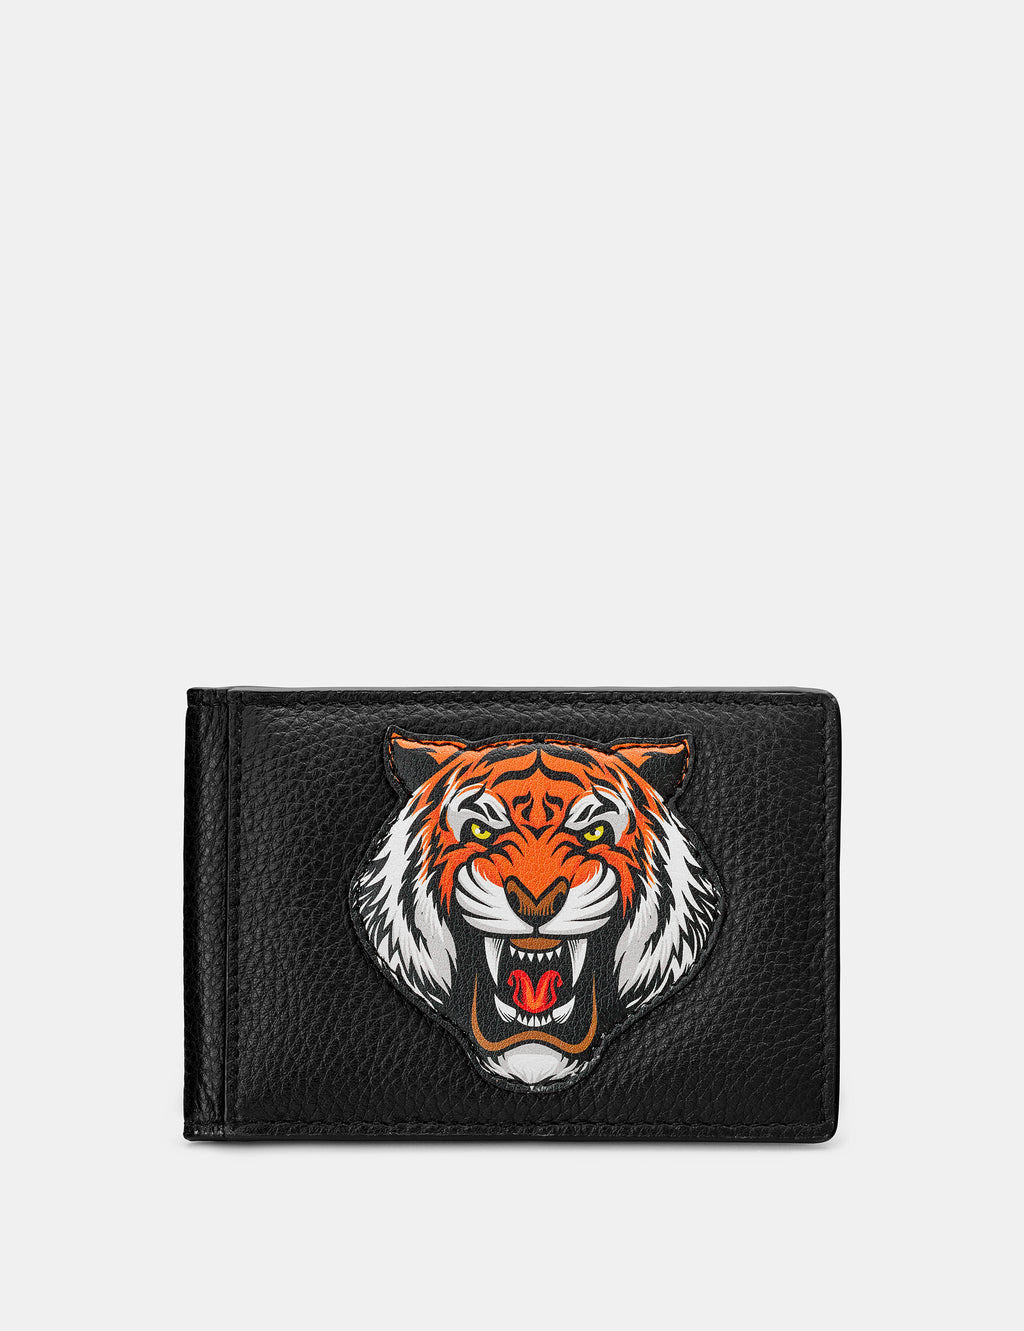 Tiger Black Leather Travel Pass Holder